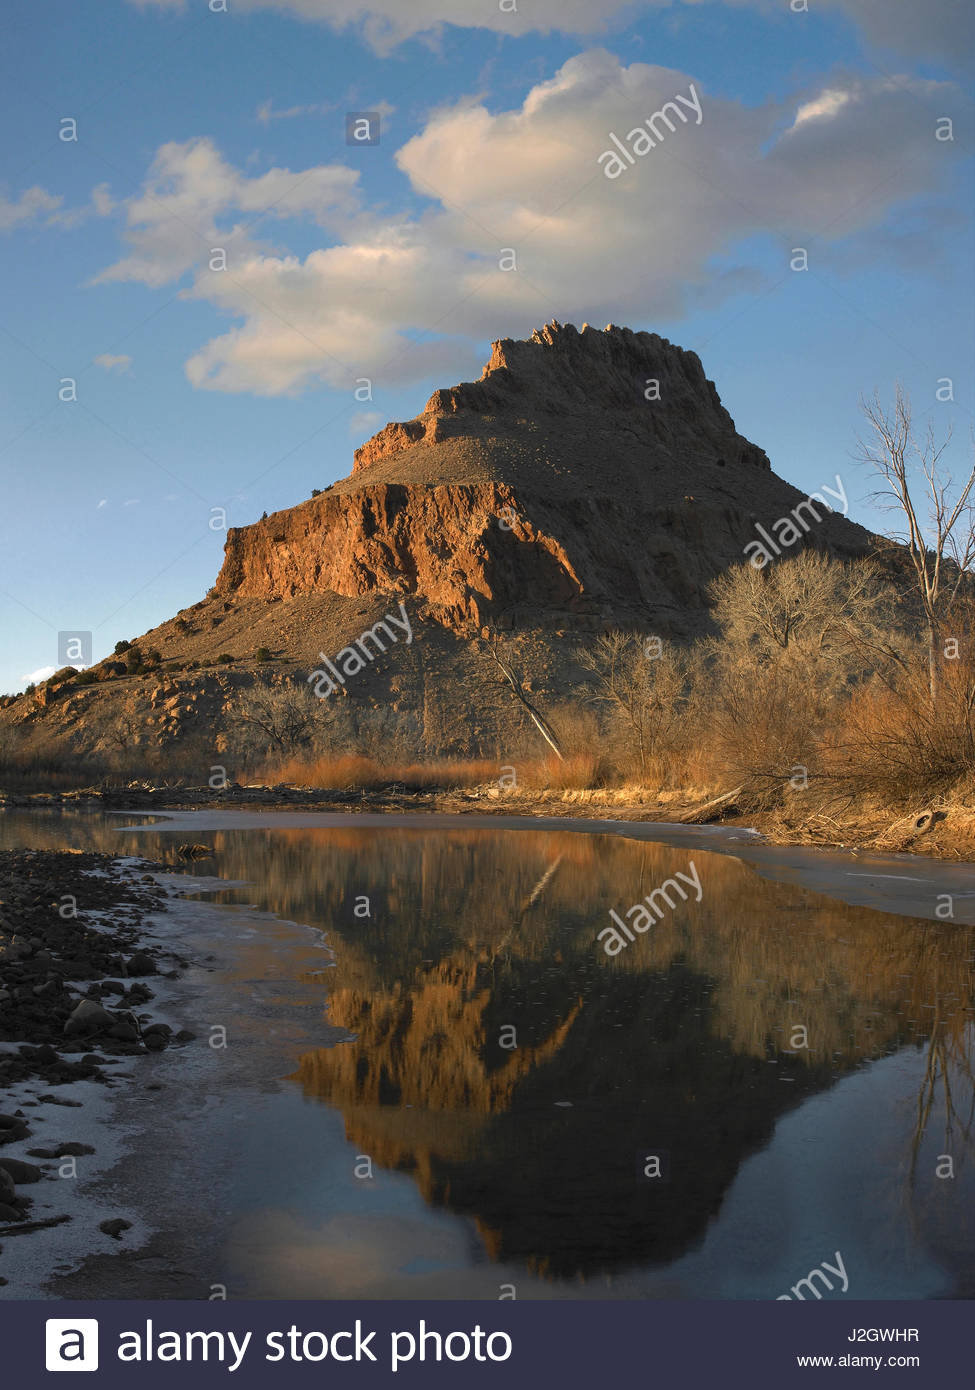 New mexico rio arriba county abiquiu - Rio Chama Near Abiquiu In Winter New Mexico Usa Stock Image